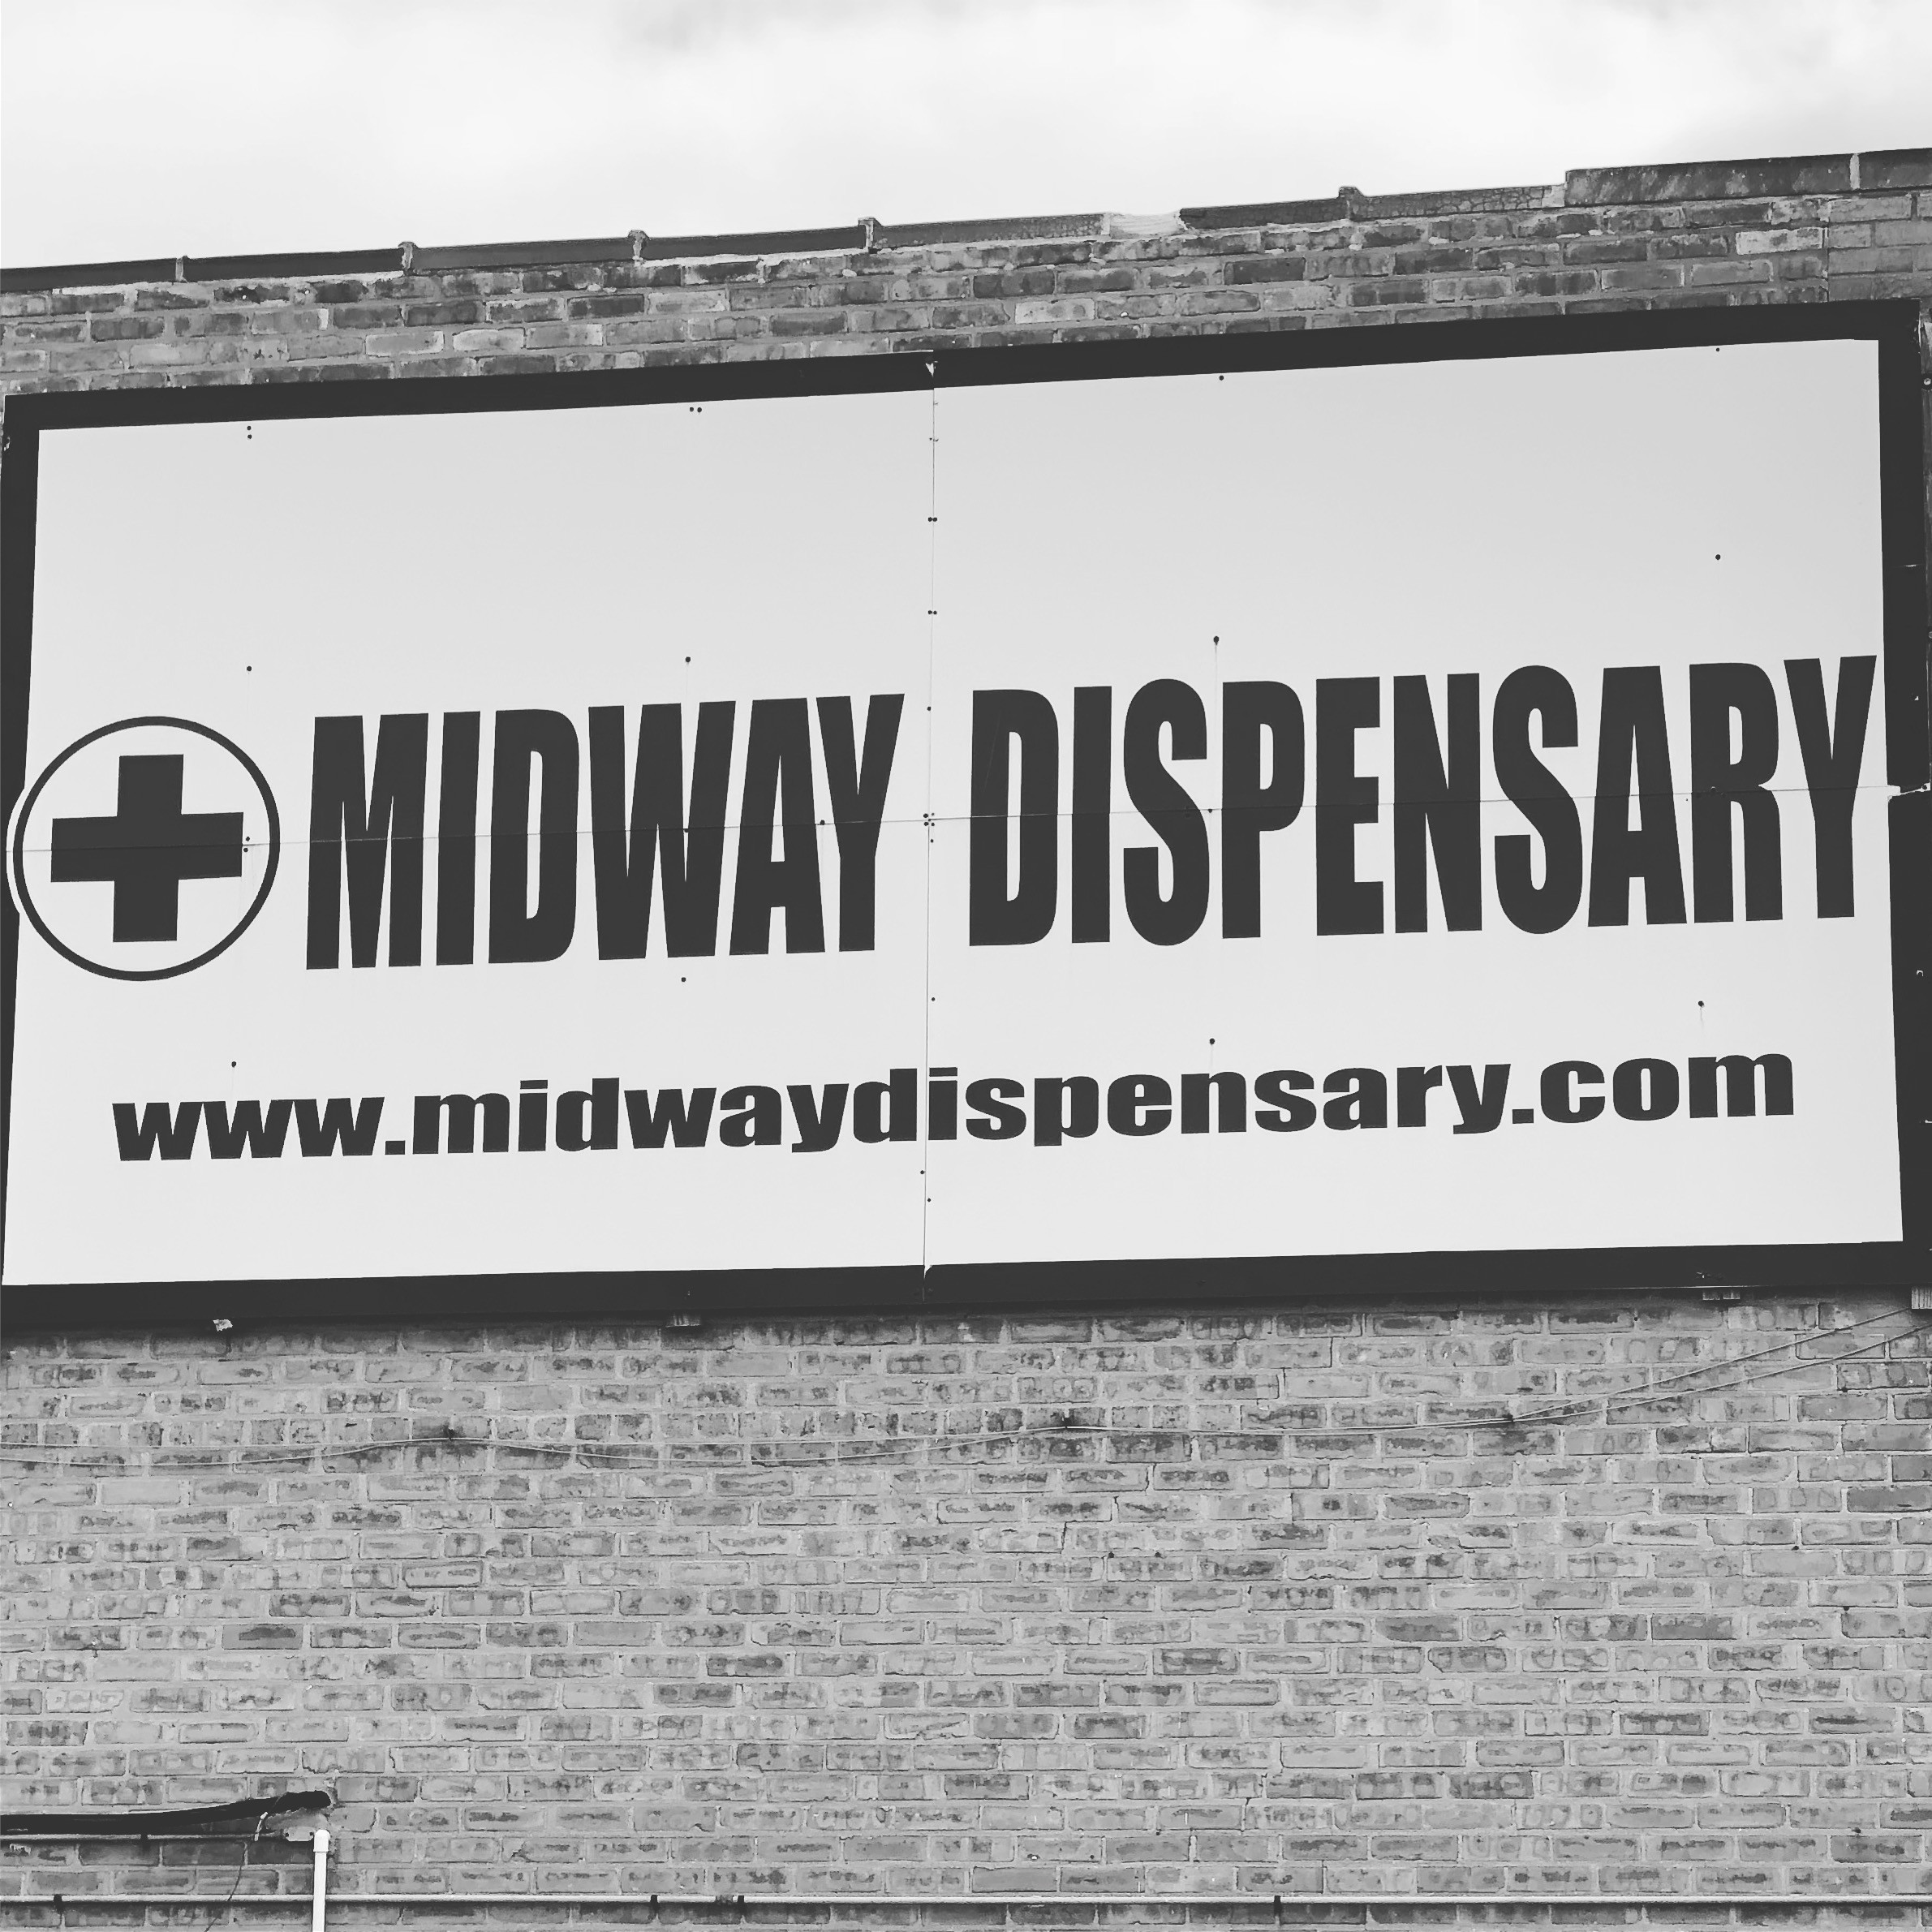 Midway Dispensary Community Meeting